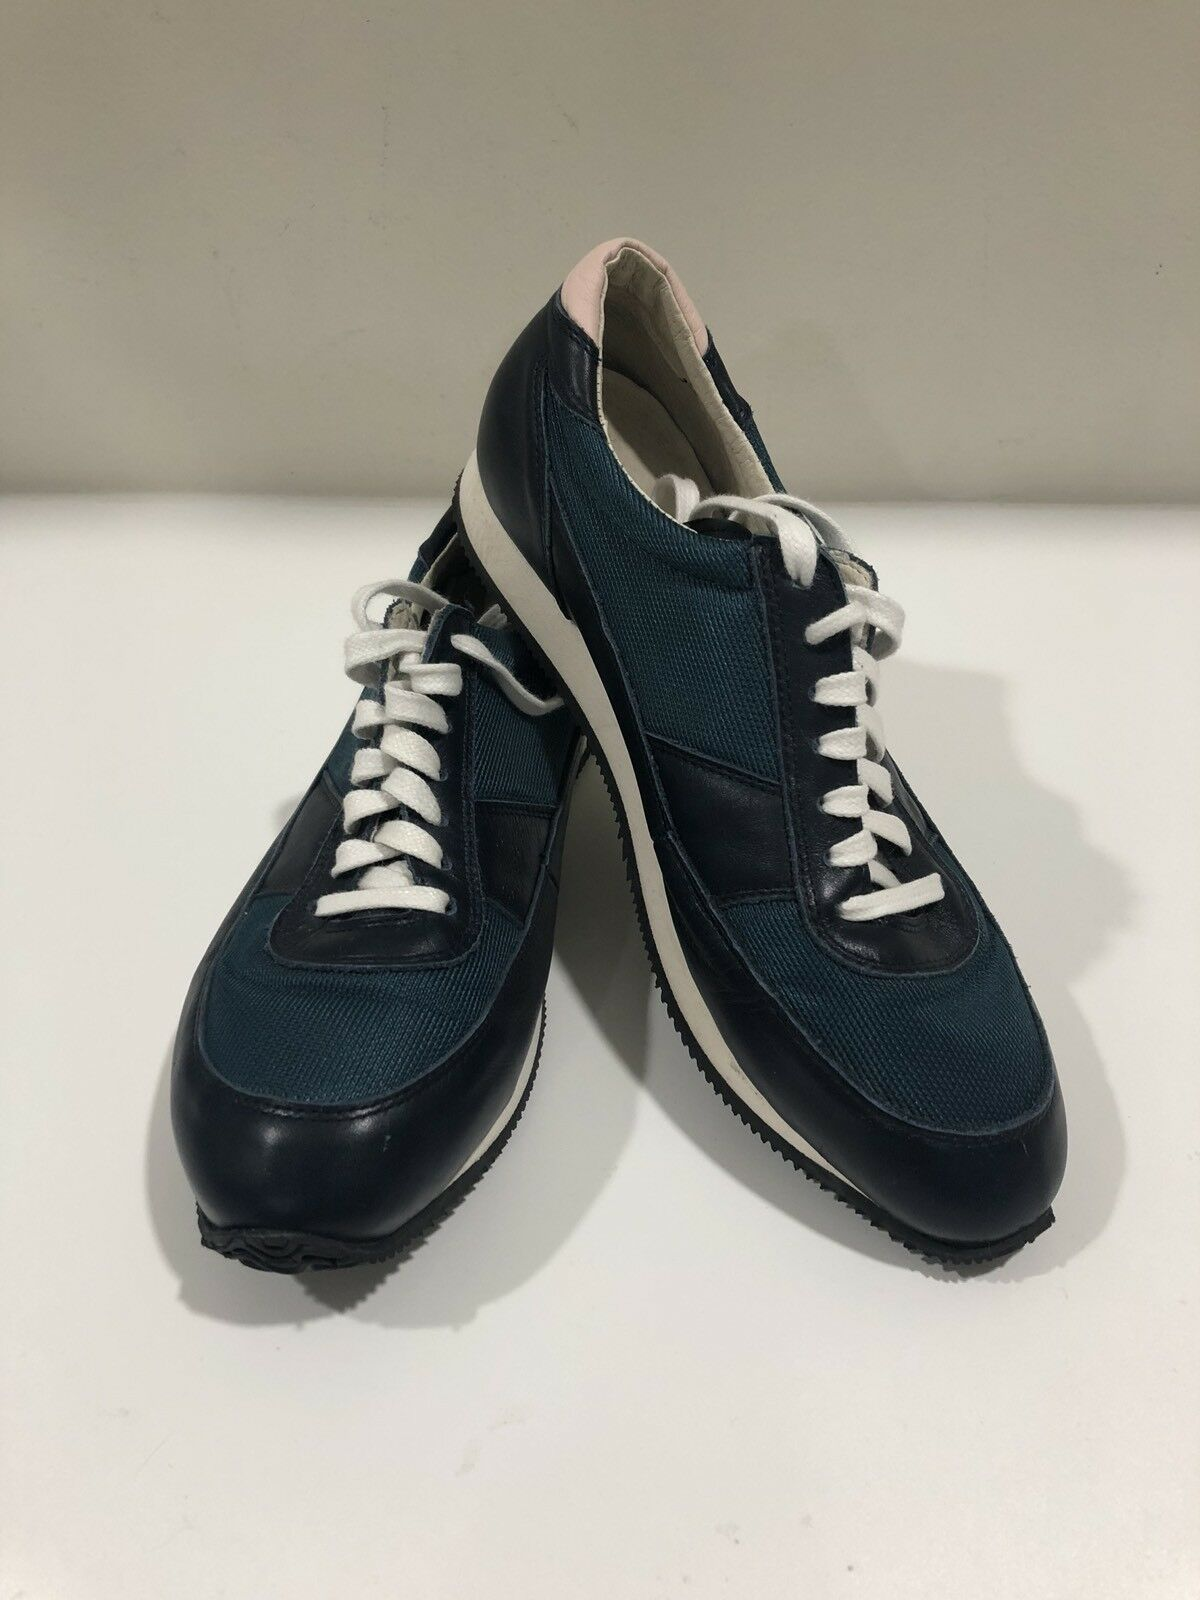 OUR OUR OUR LEGACY Mens Blau Leather Lace Up Runner Turnschuhe Größe EU 41 US 8 -Never Worn 528df0